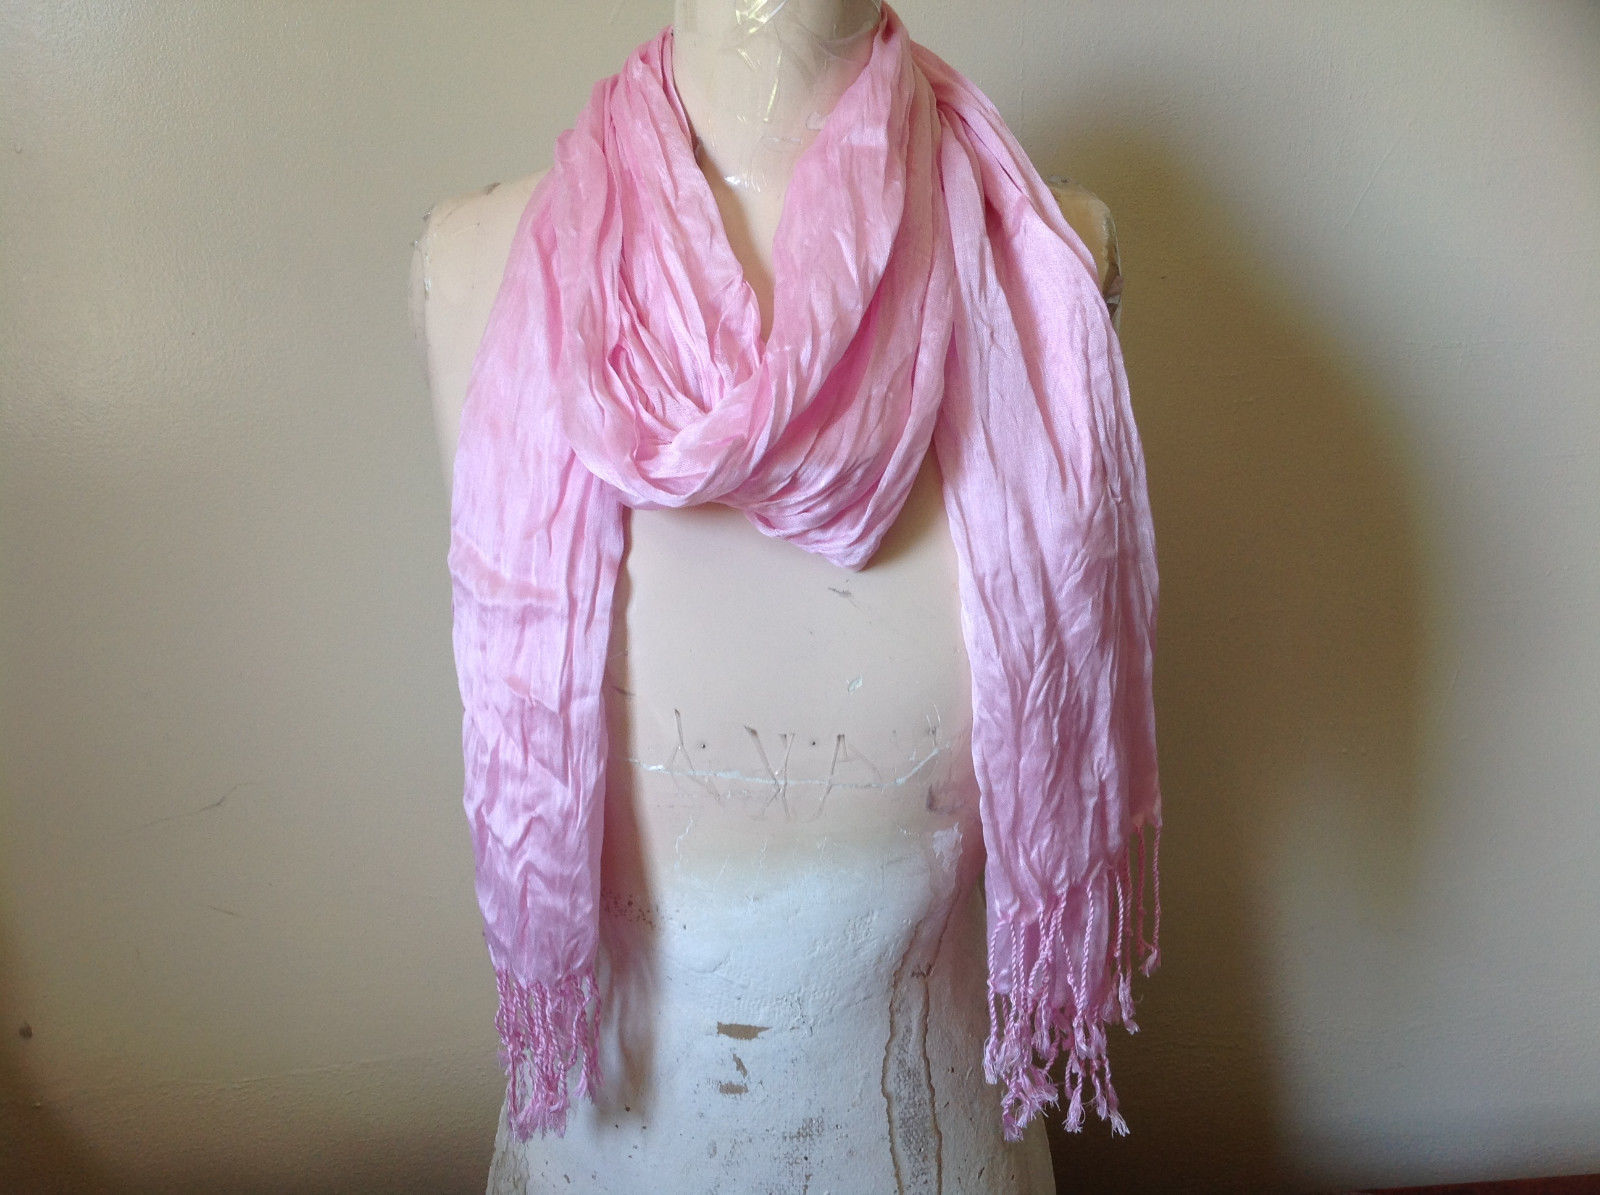 Pretty Light Pink Scrunched Style Tasseled Fashion Scarf Soft Material